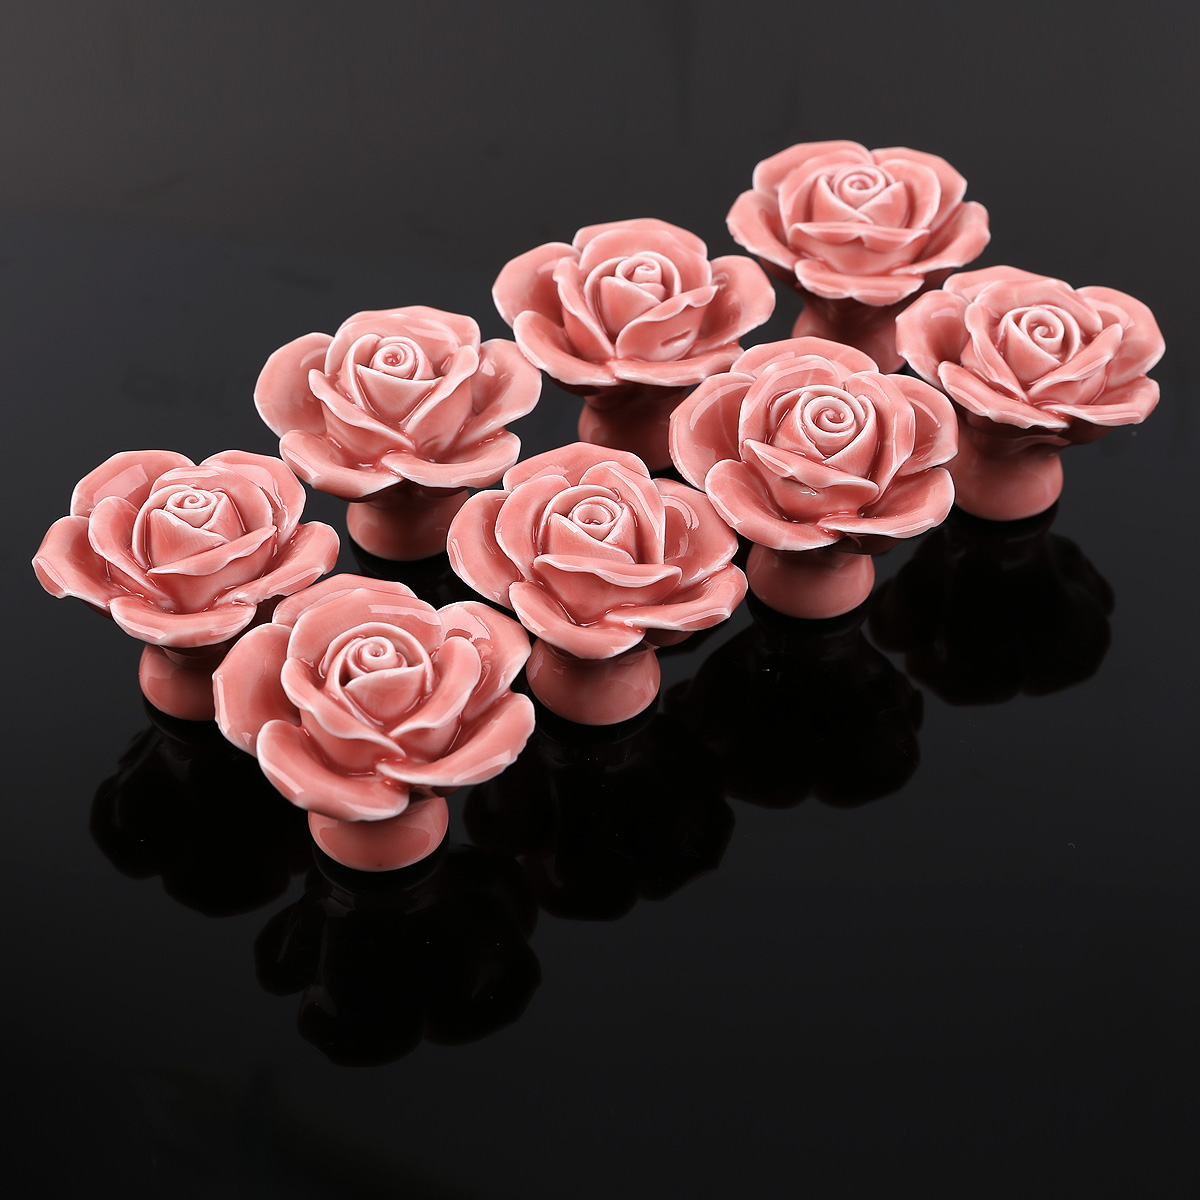 8x Vintage Ceramic Rose Flower Round Drawer Knobs Door